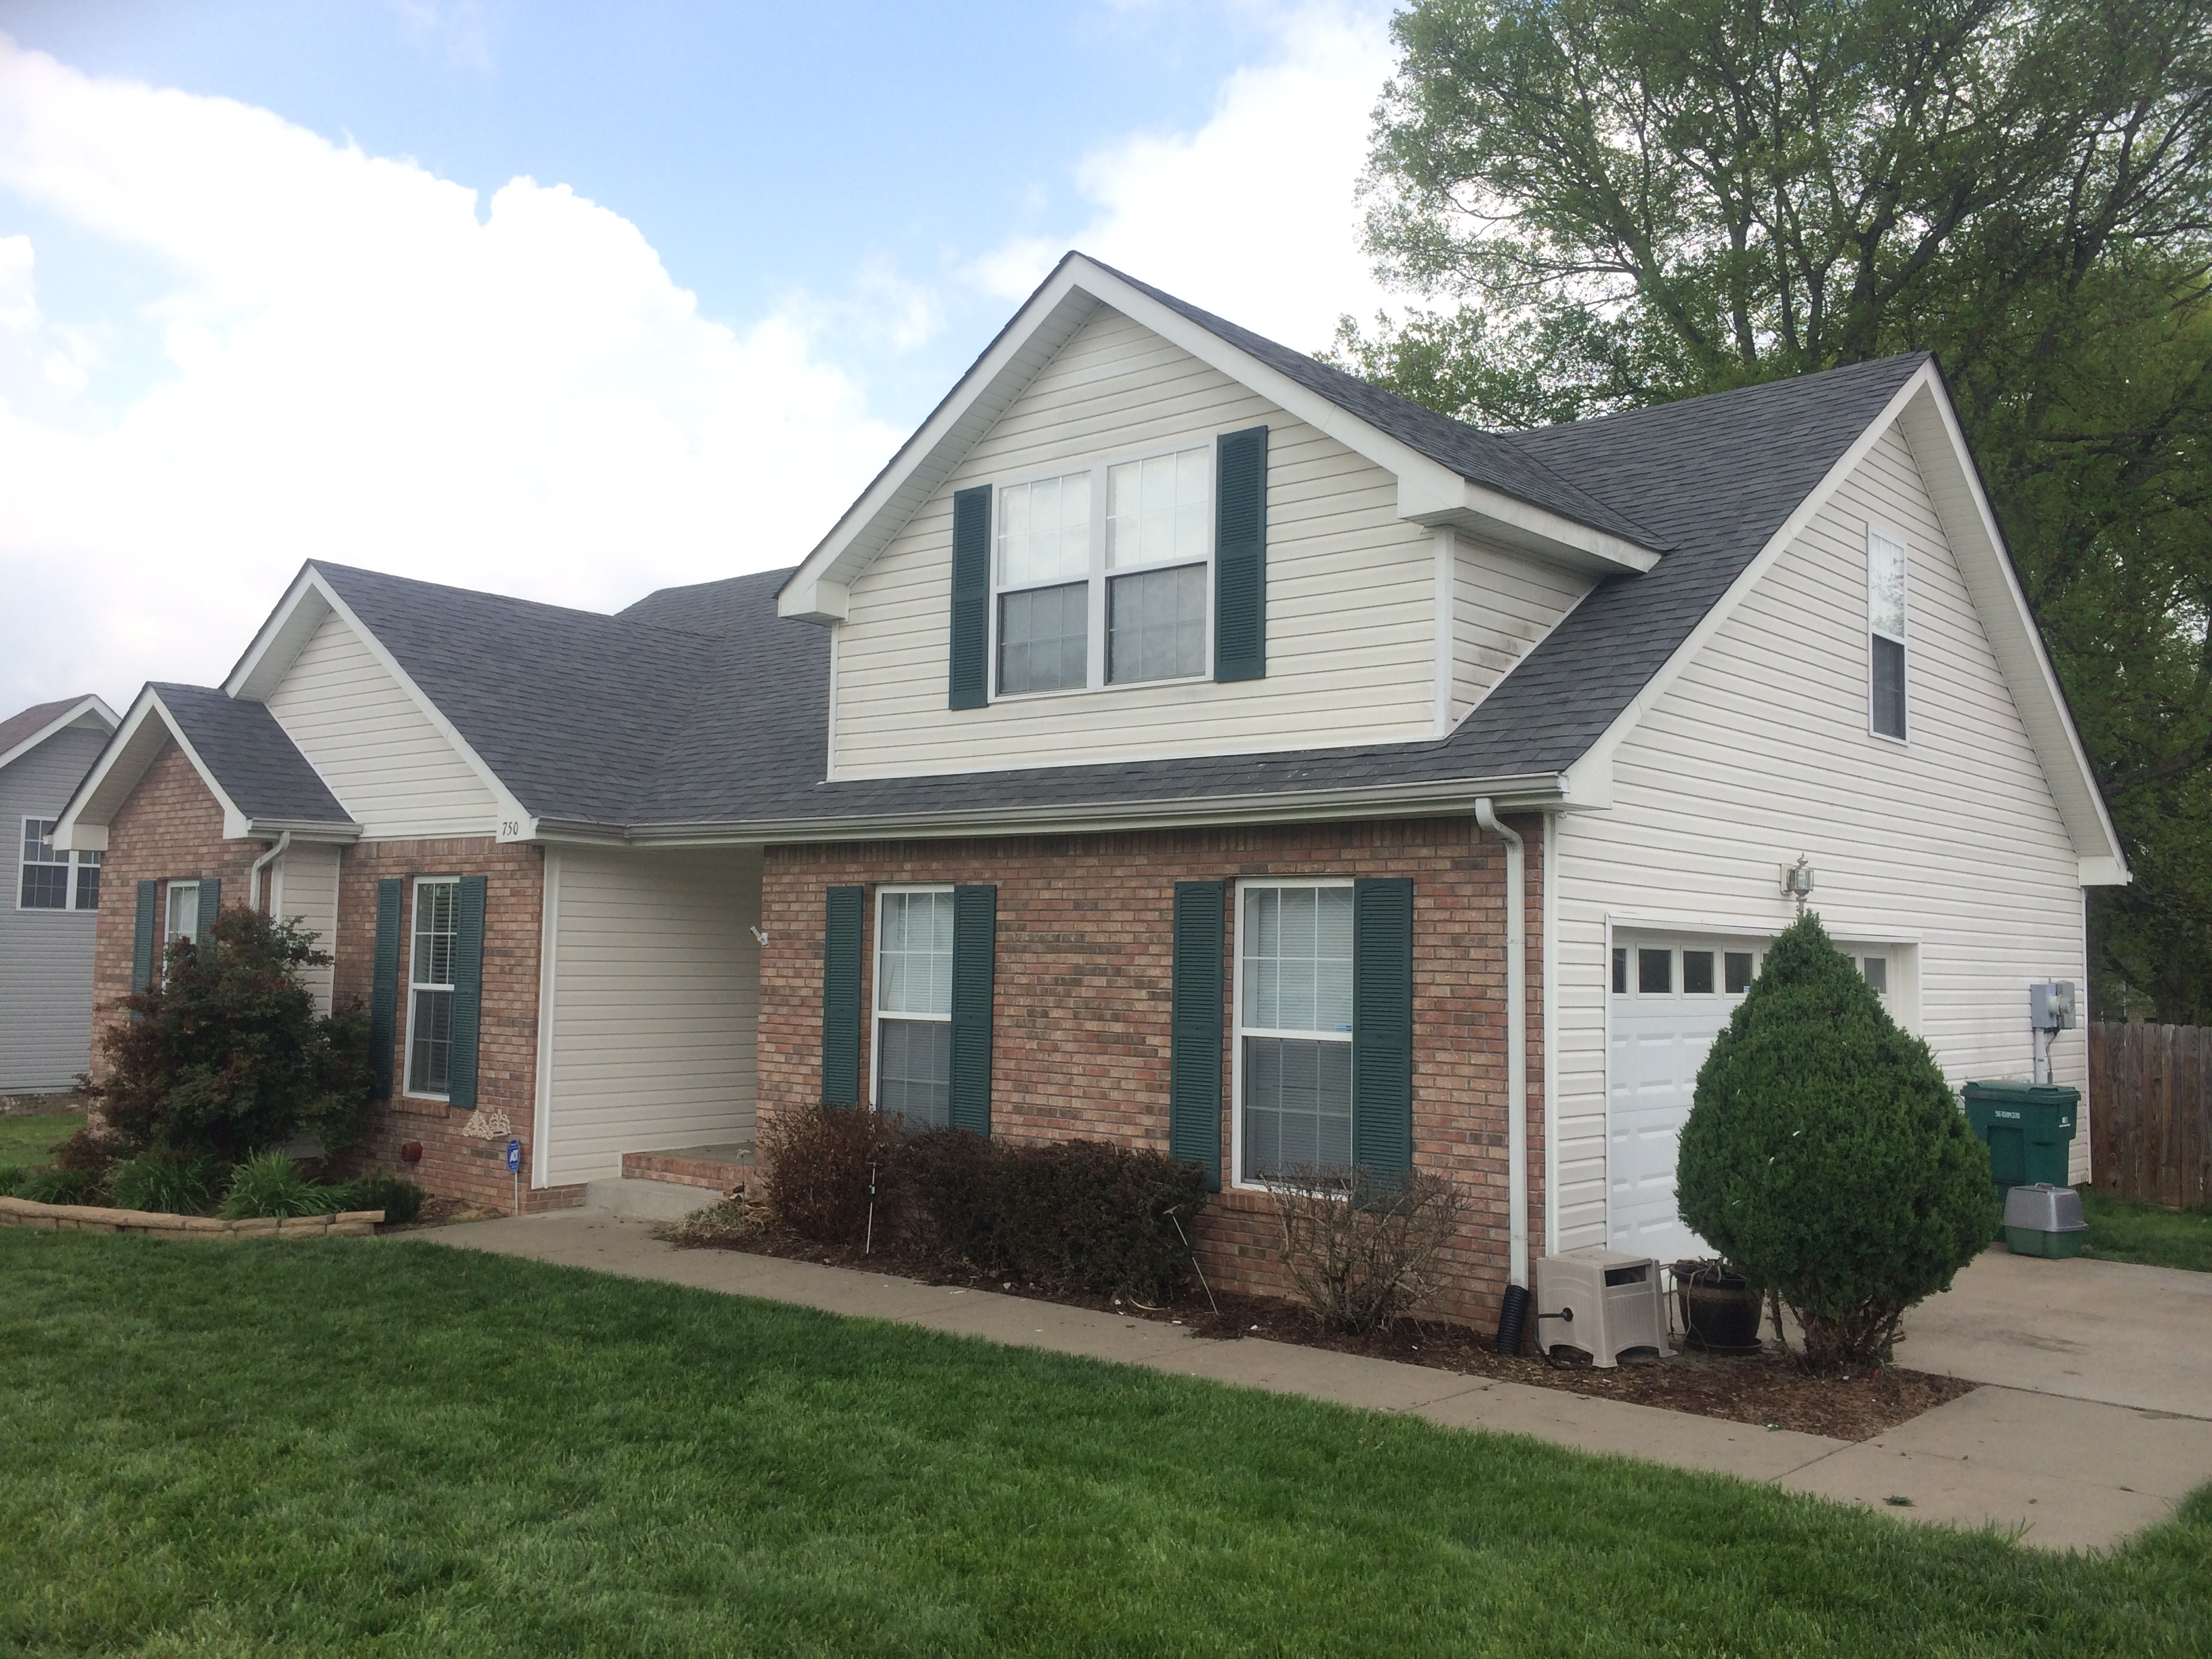 Integrity Roofing Llc In Clarksville Tn Whitepages